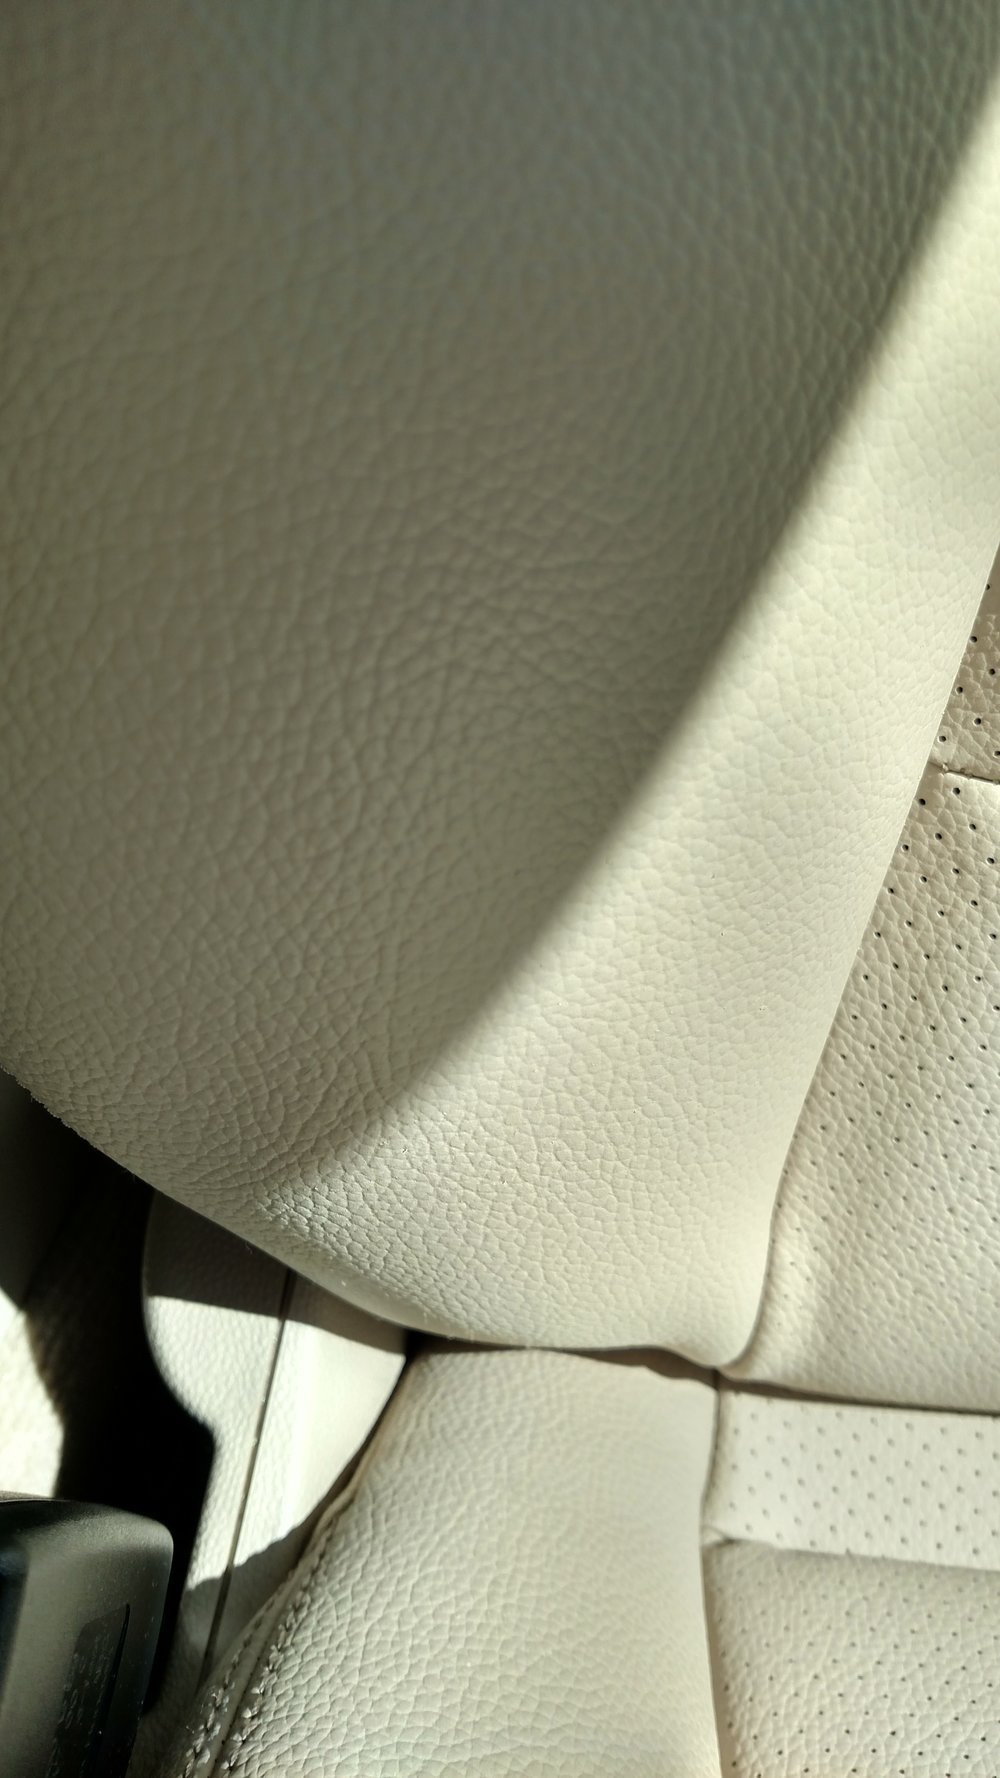 Bluejean removed Car seat after.jpg